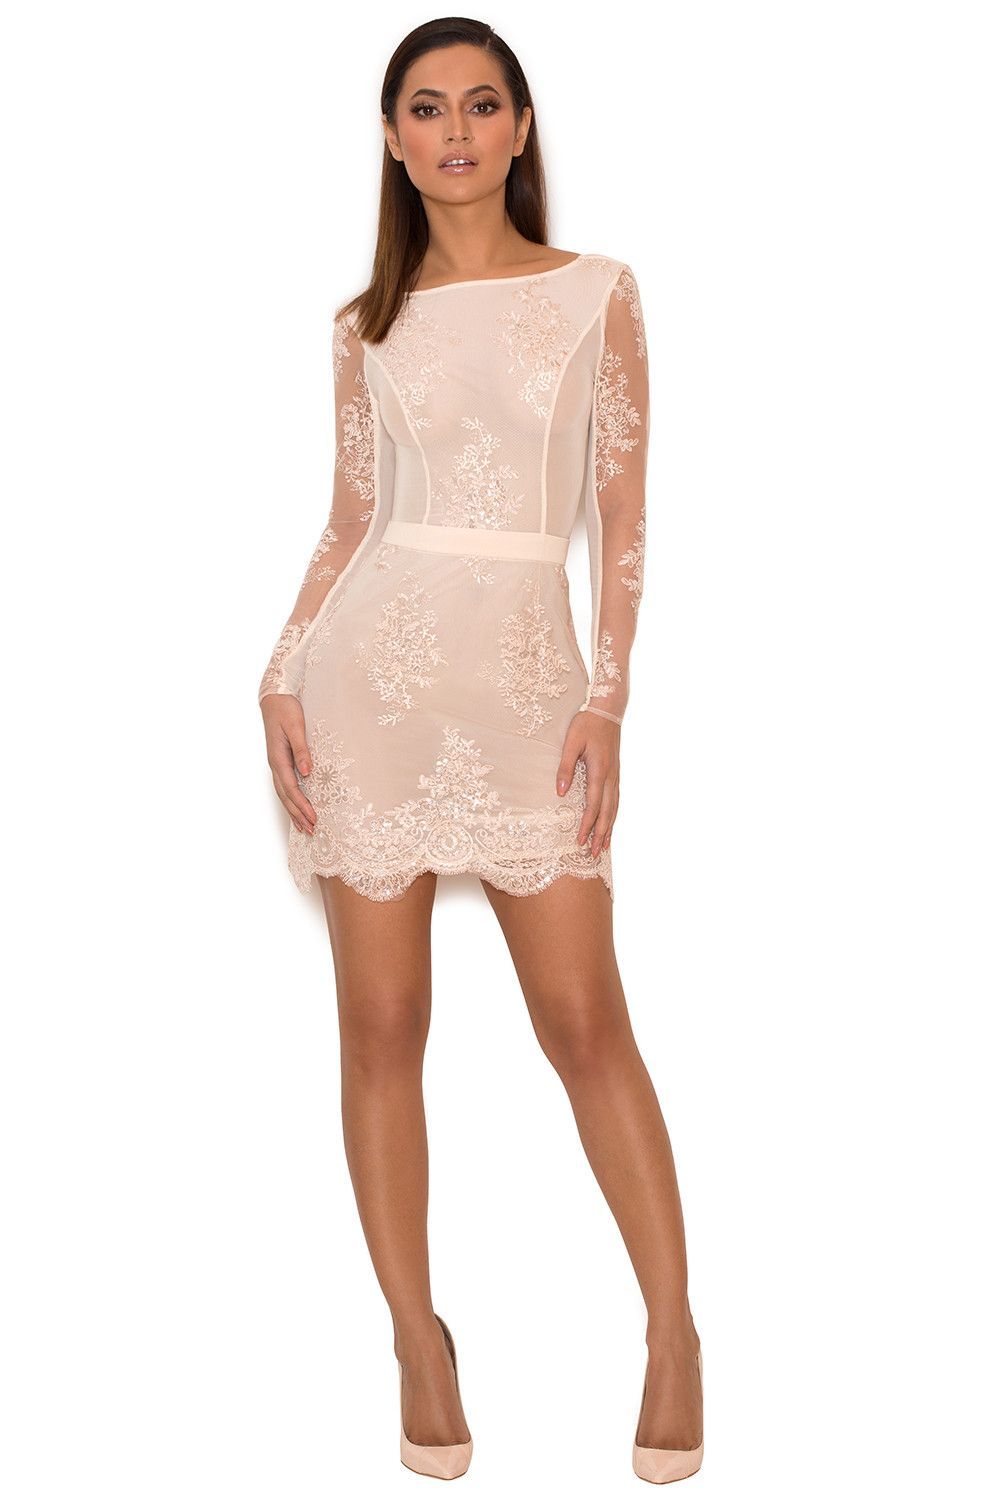 Clothing bodycon dresses usatheau light pink lace and sequin